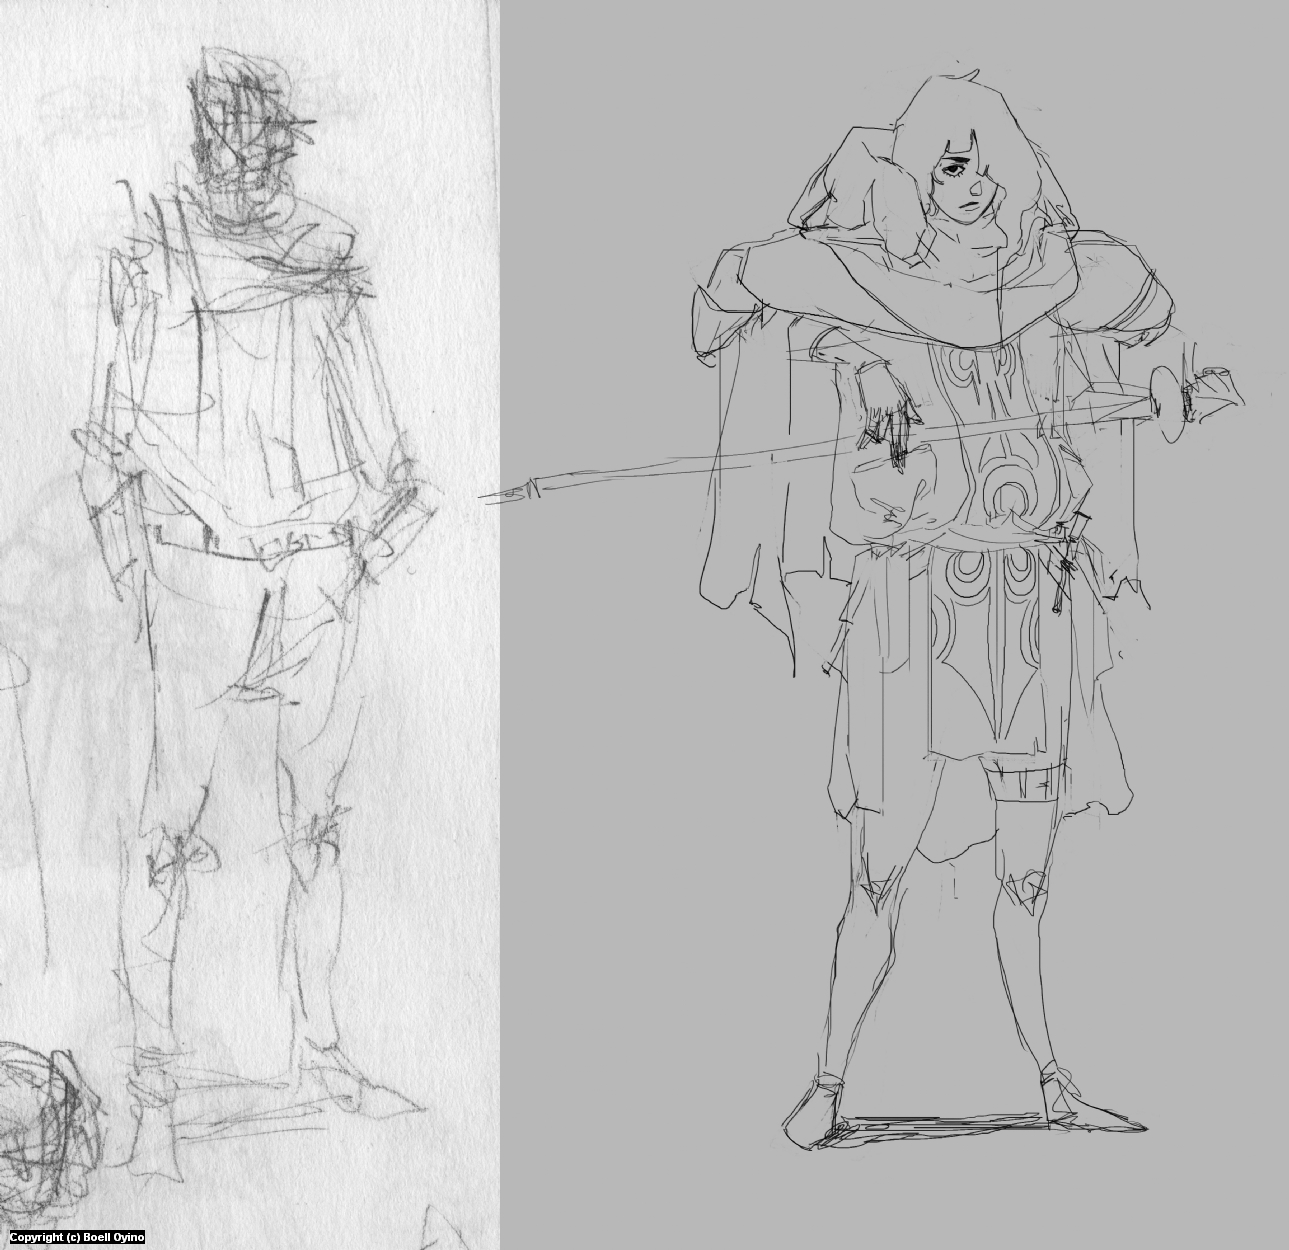 Jedi Madame - Character design process 01 | Pose & Clothes  Artwork by Boell Oyino